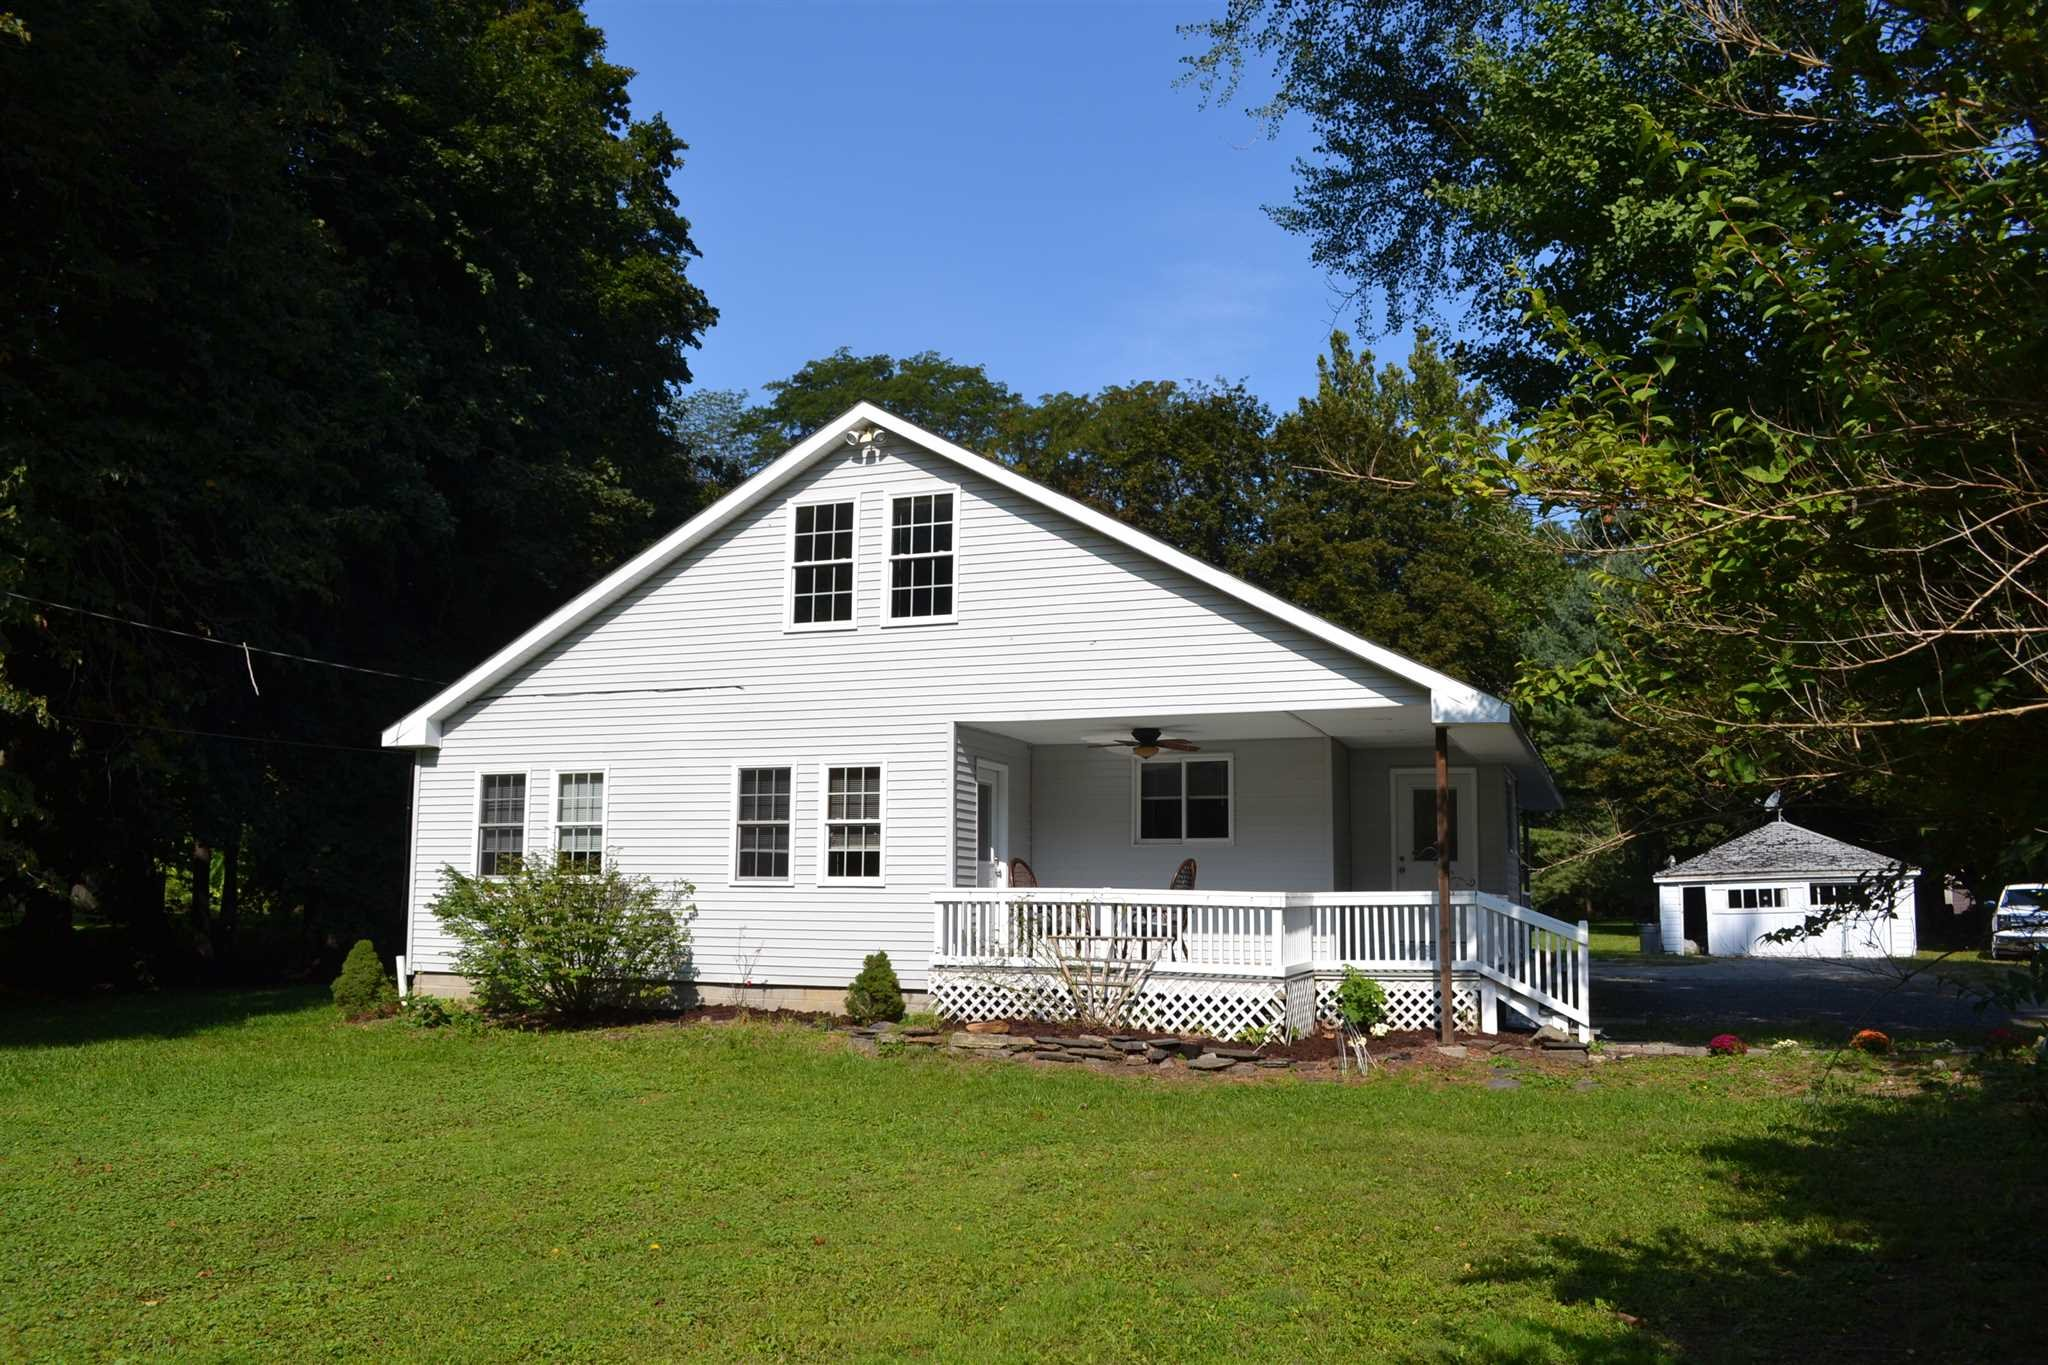 Single Family Home for Sale at 95 TINKER TOWN Road 95 TINKER TOWN Road Amenia, New York 12501 United States